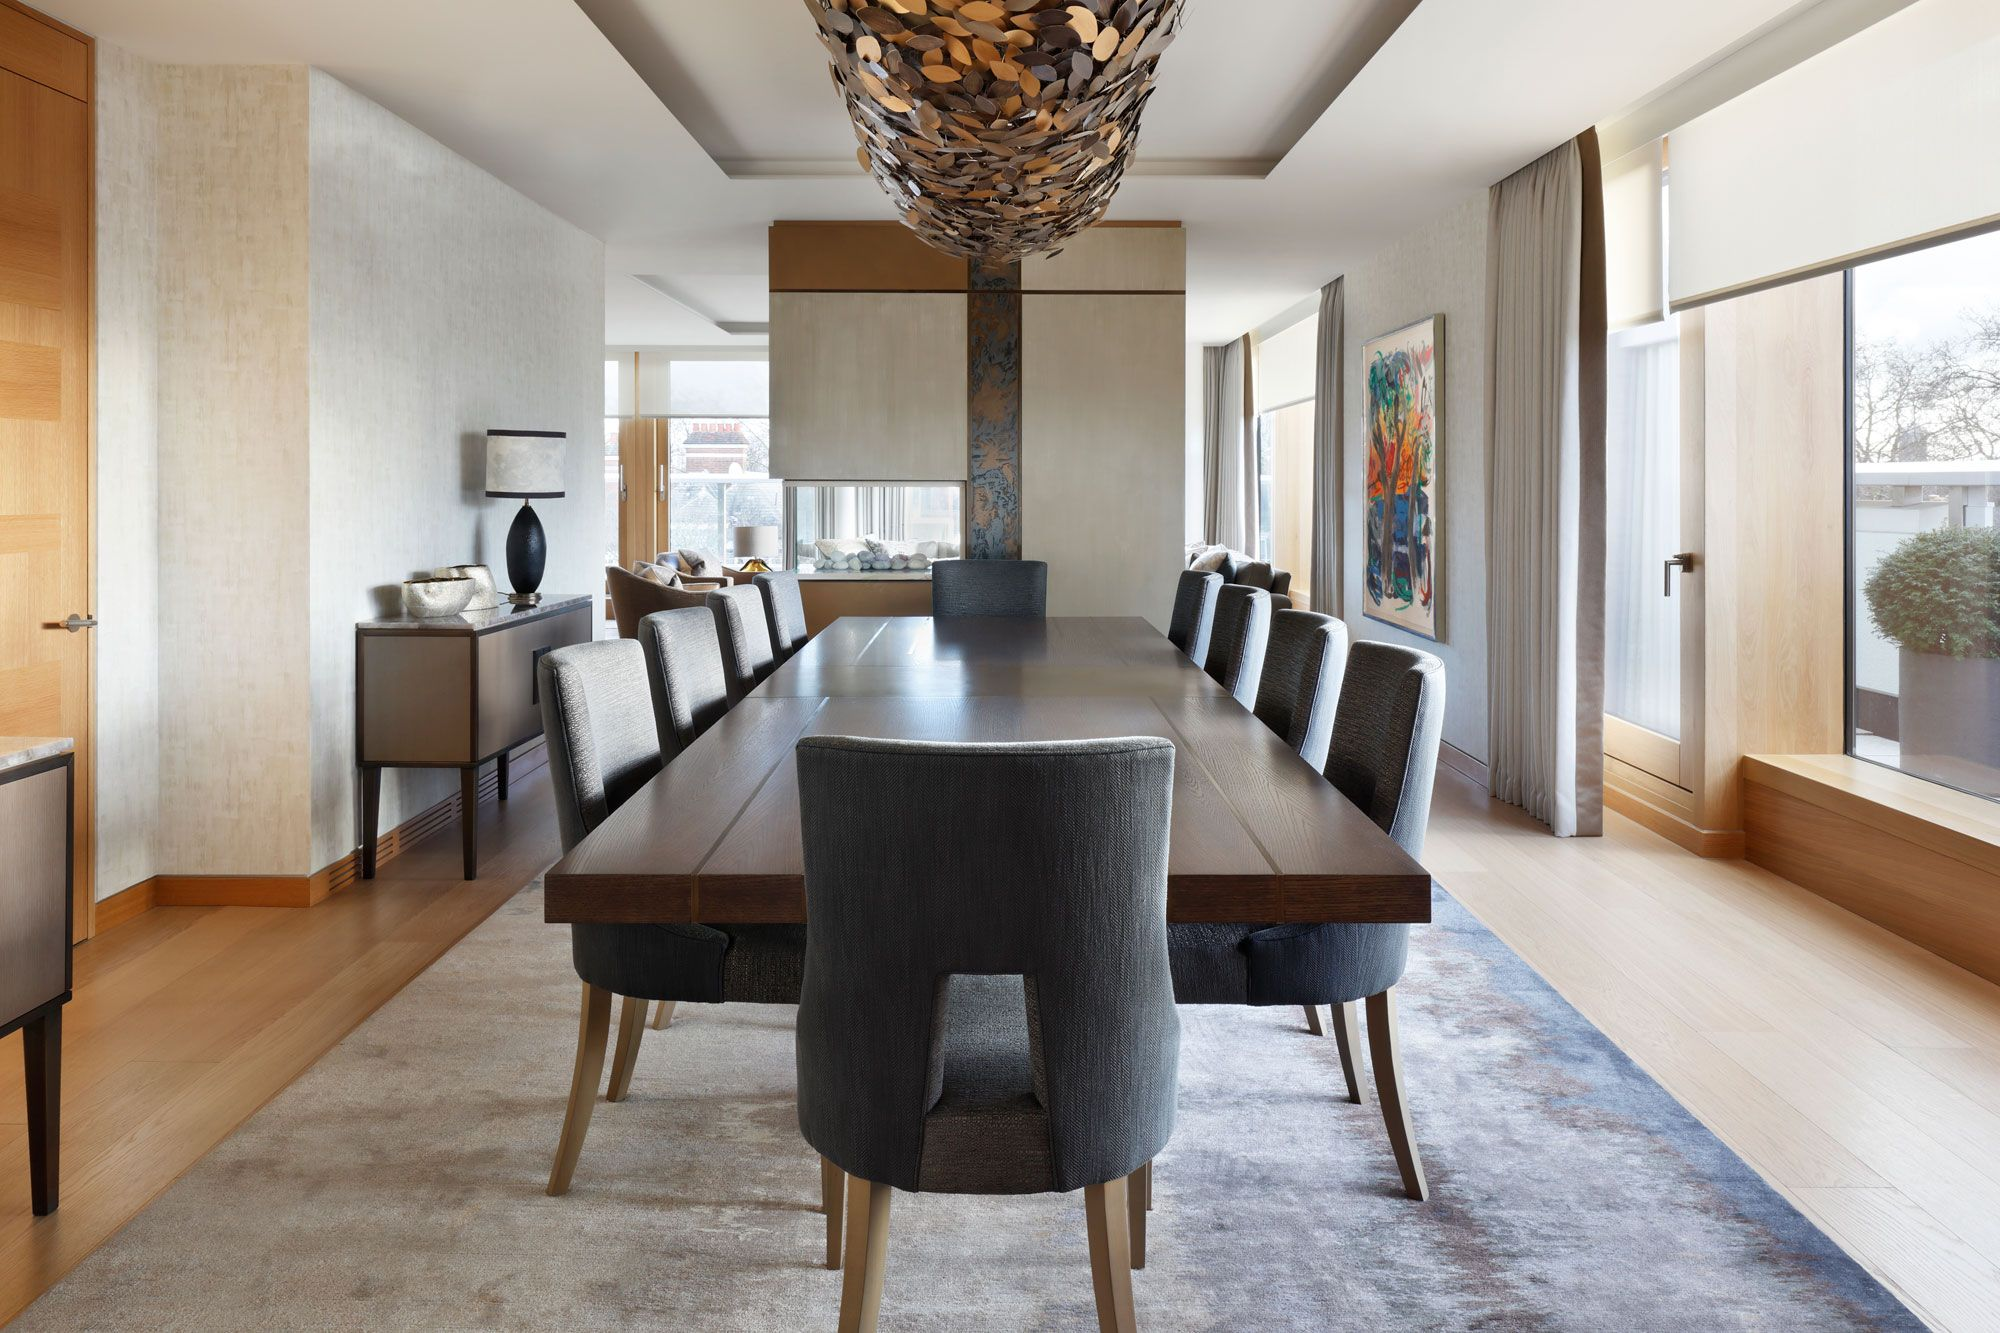 Find This Pin And More On Dining Room Ideas By Jbucc16